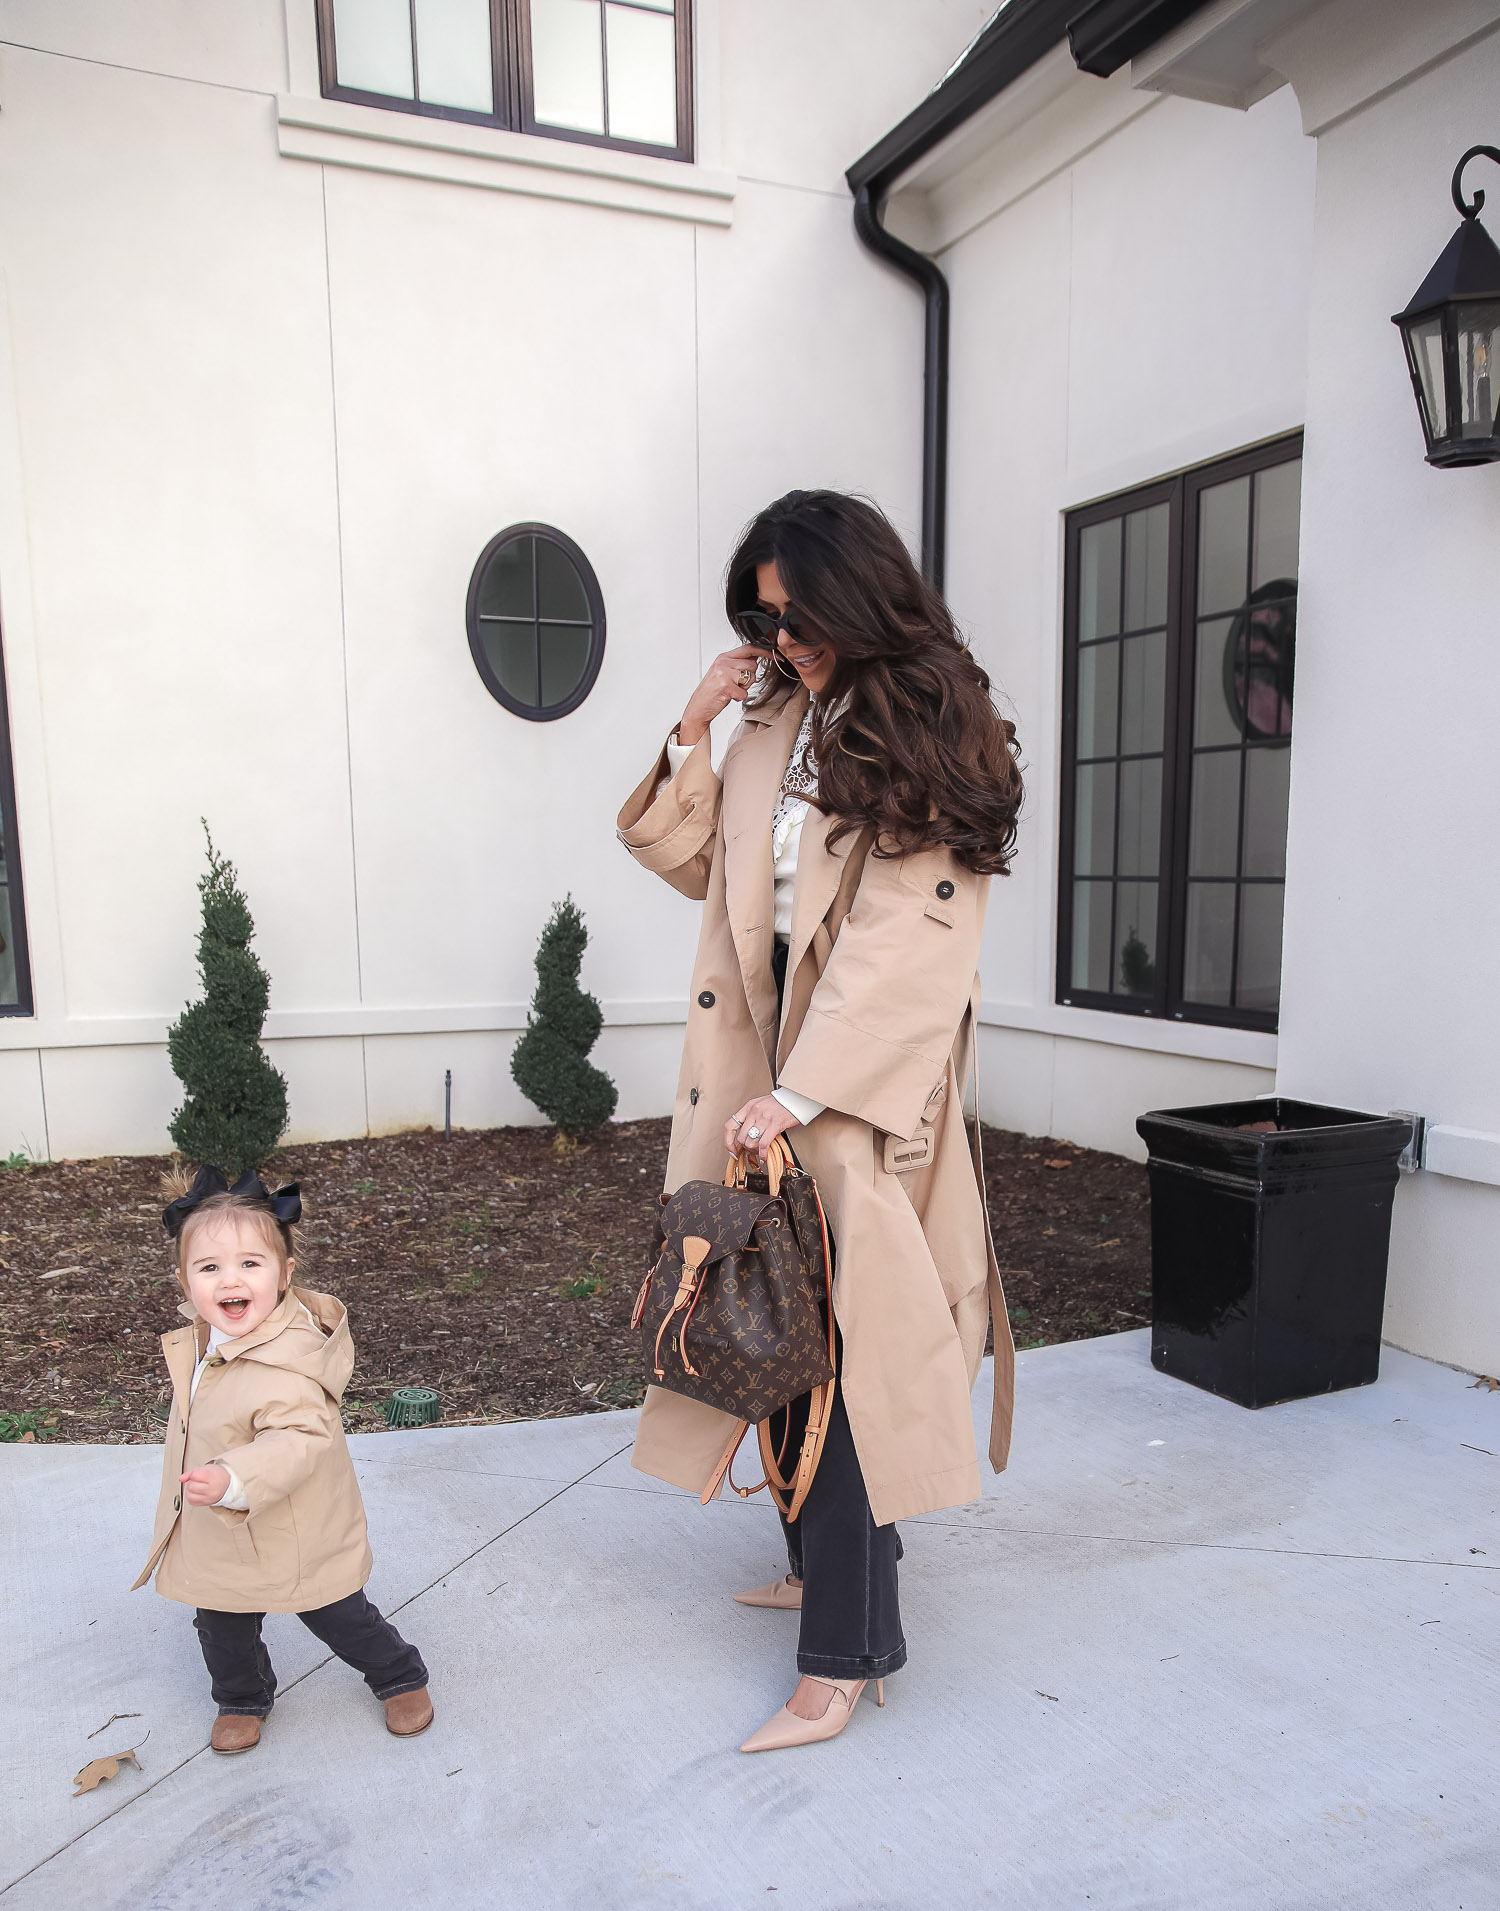 Express spring fashion 2021, emily gemma, mommy daughter matching outfits pinterest, baby fashion blogger, express trench coat 2021 |Mommy and Me Outfits by popular US fashion blog, The Sweetest Thing: image of Emily Gemma and her daughter Sophie standing outside and wearing a Express trench coat, Express flare jeans, Express gold hoop earrings, Express ruffle lack mock neck shirt, and holding a Louis Vuitton bags.